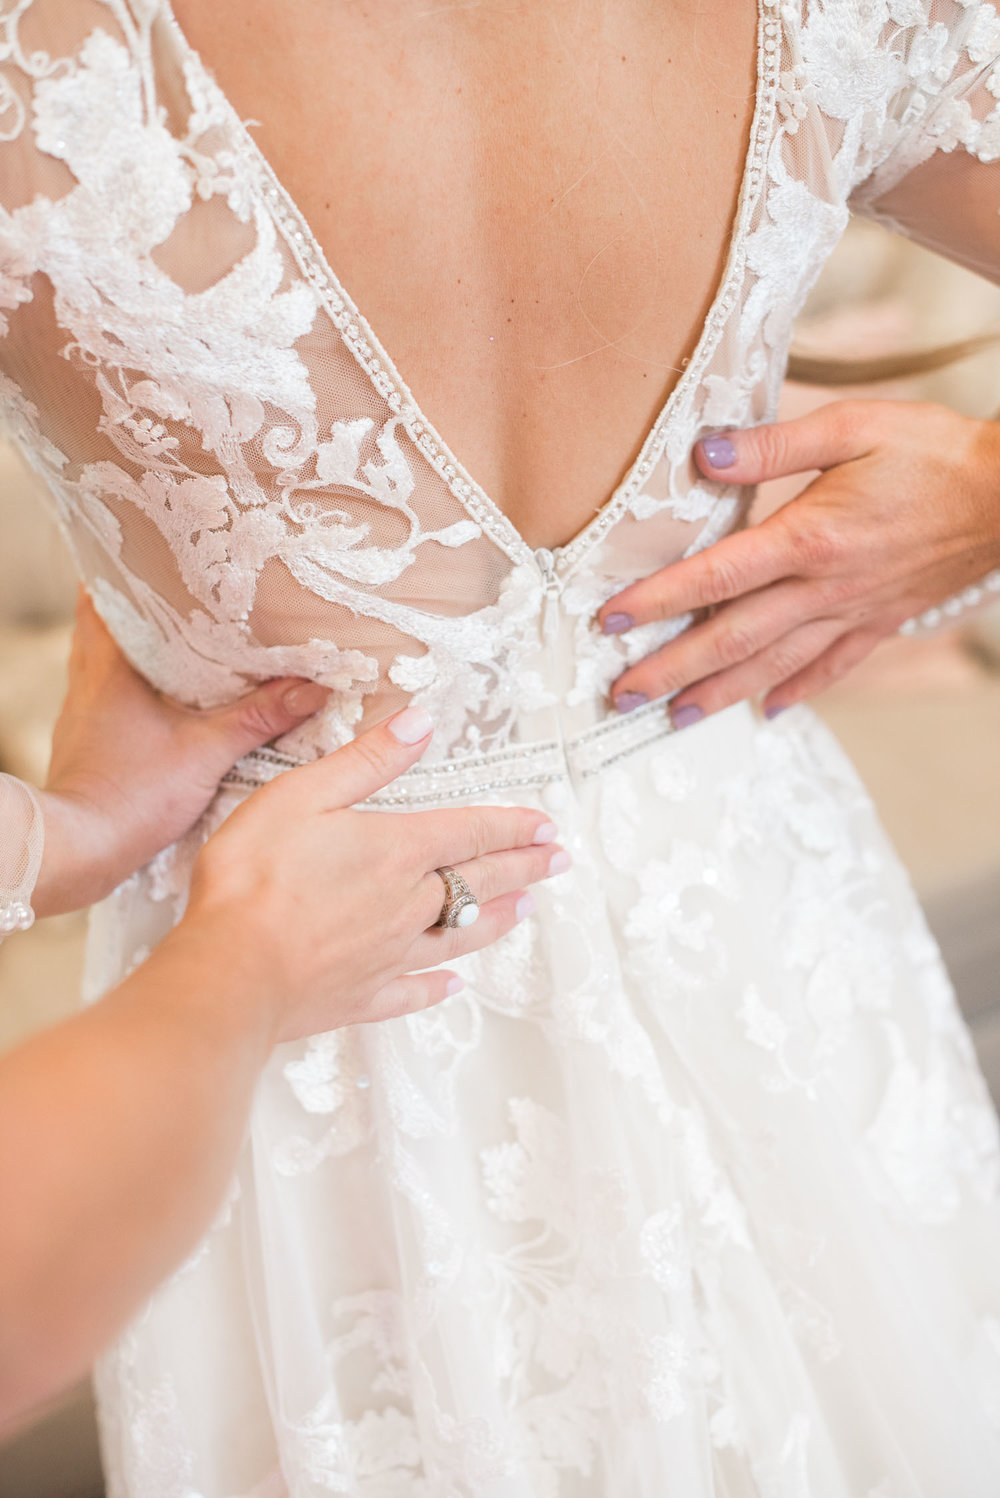 20 wedding venue at lake travis dress details.jpg